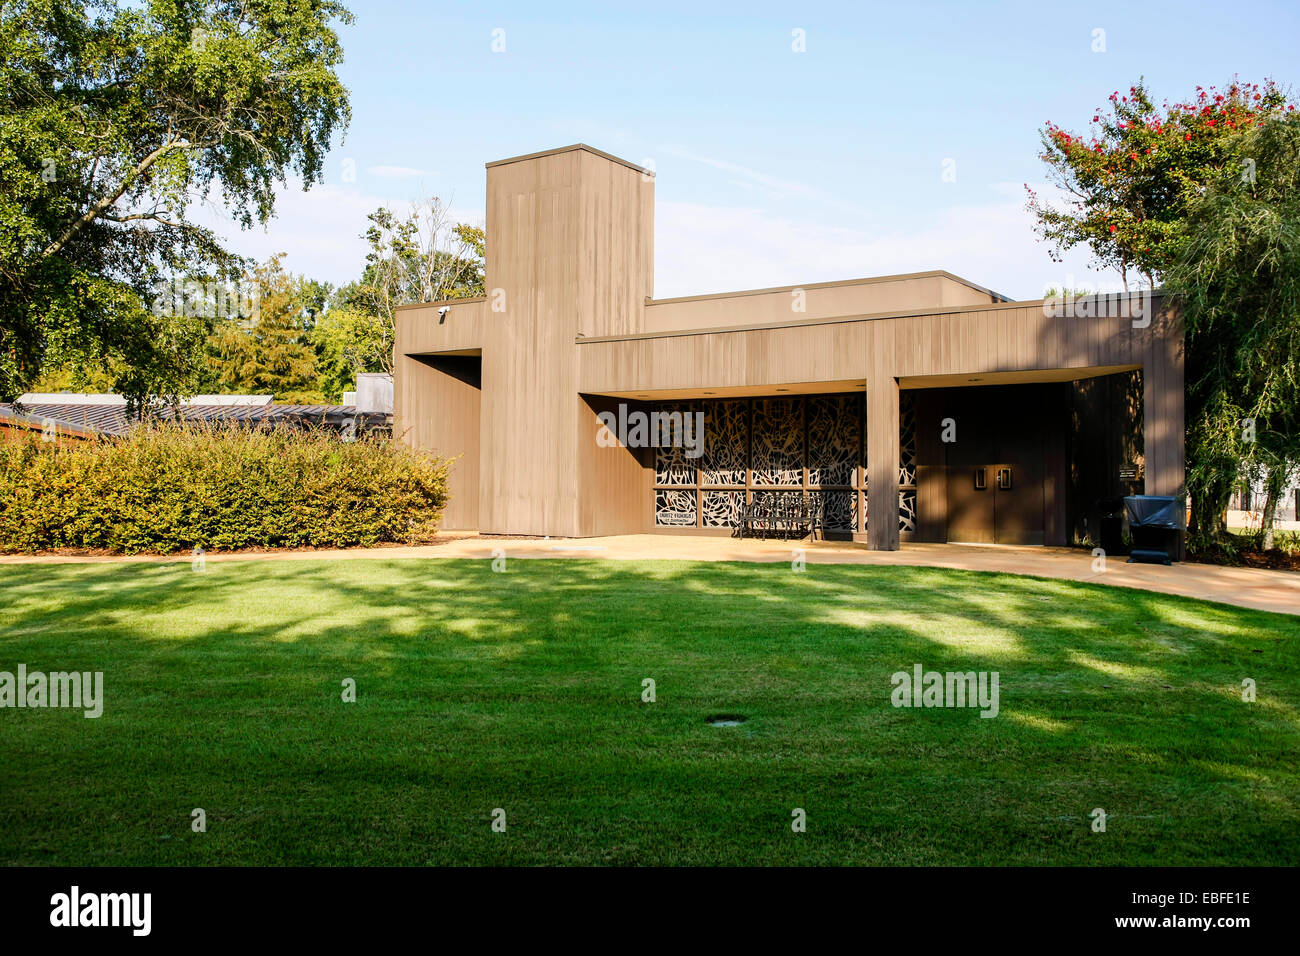 The Elvis Birthplace Museum building in Tupelo Mississippi - Stock Image